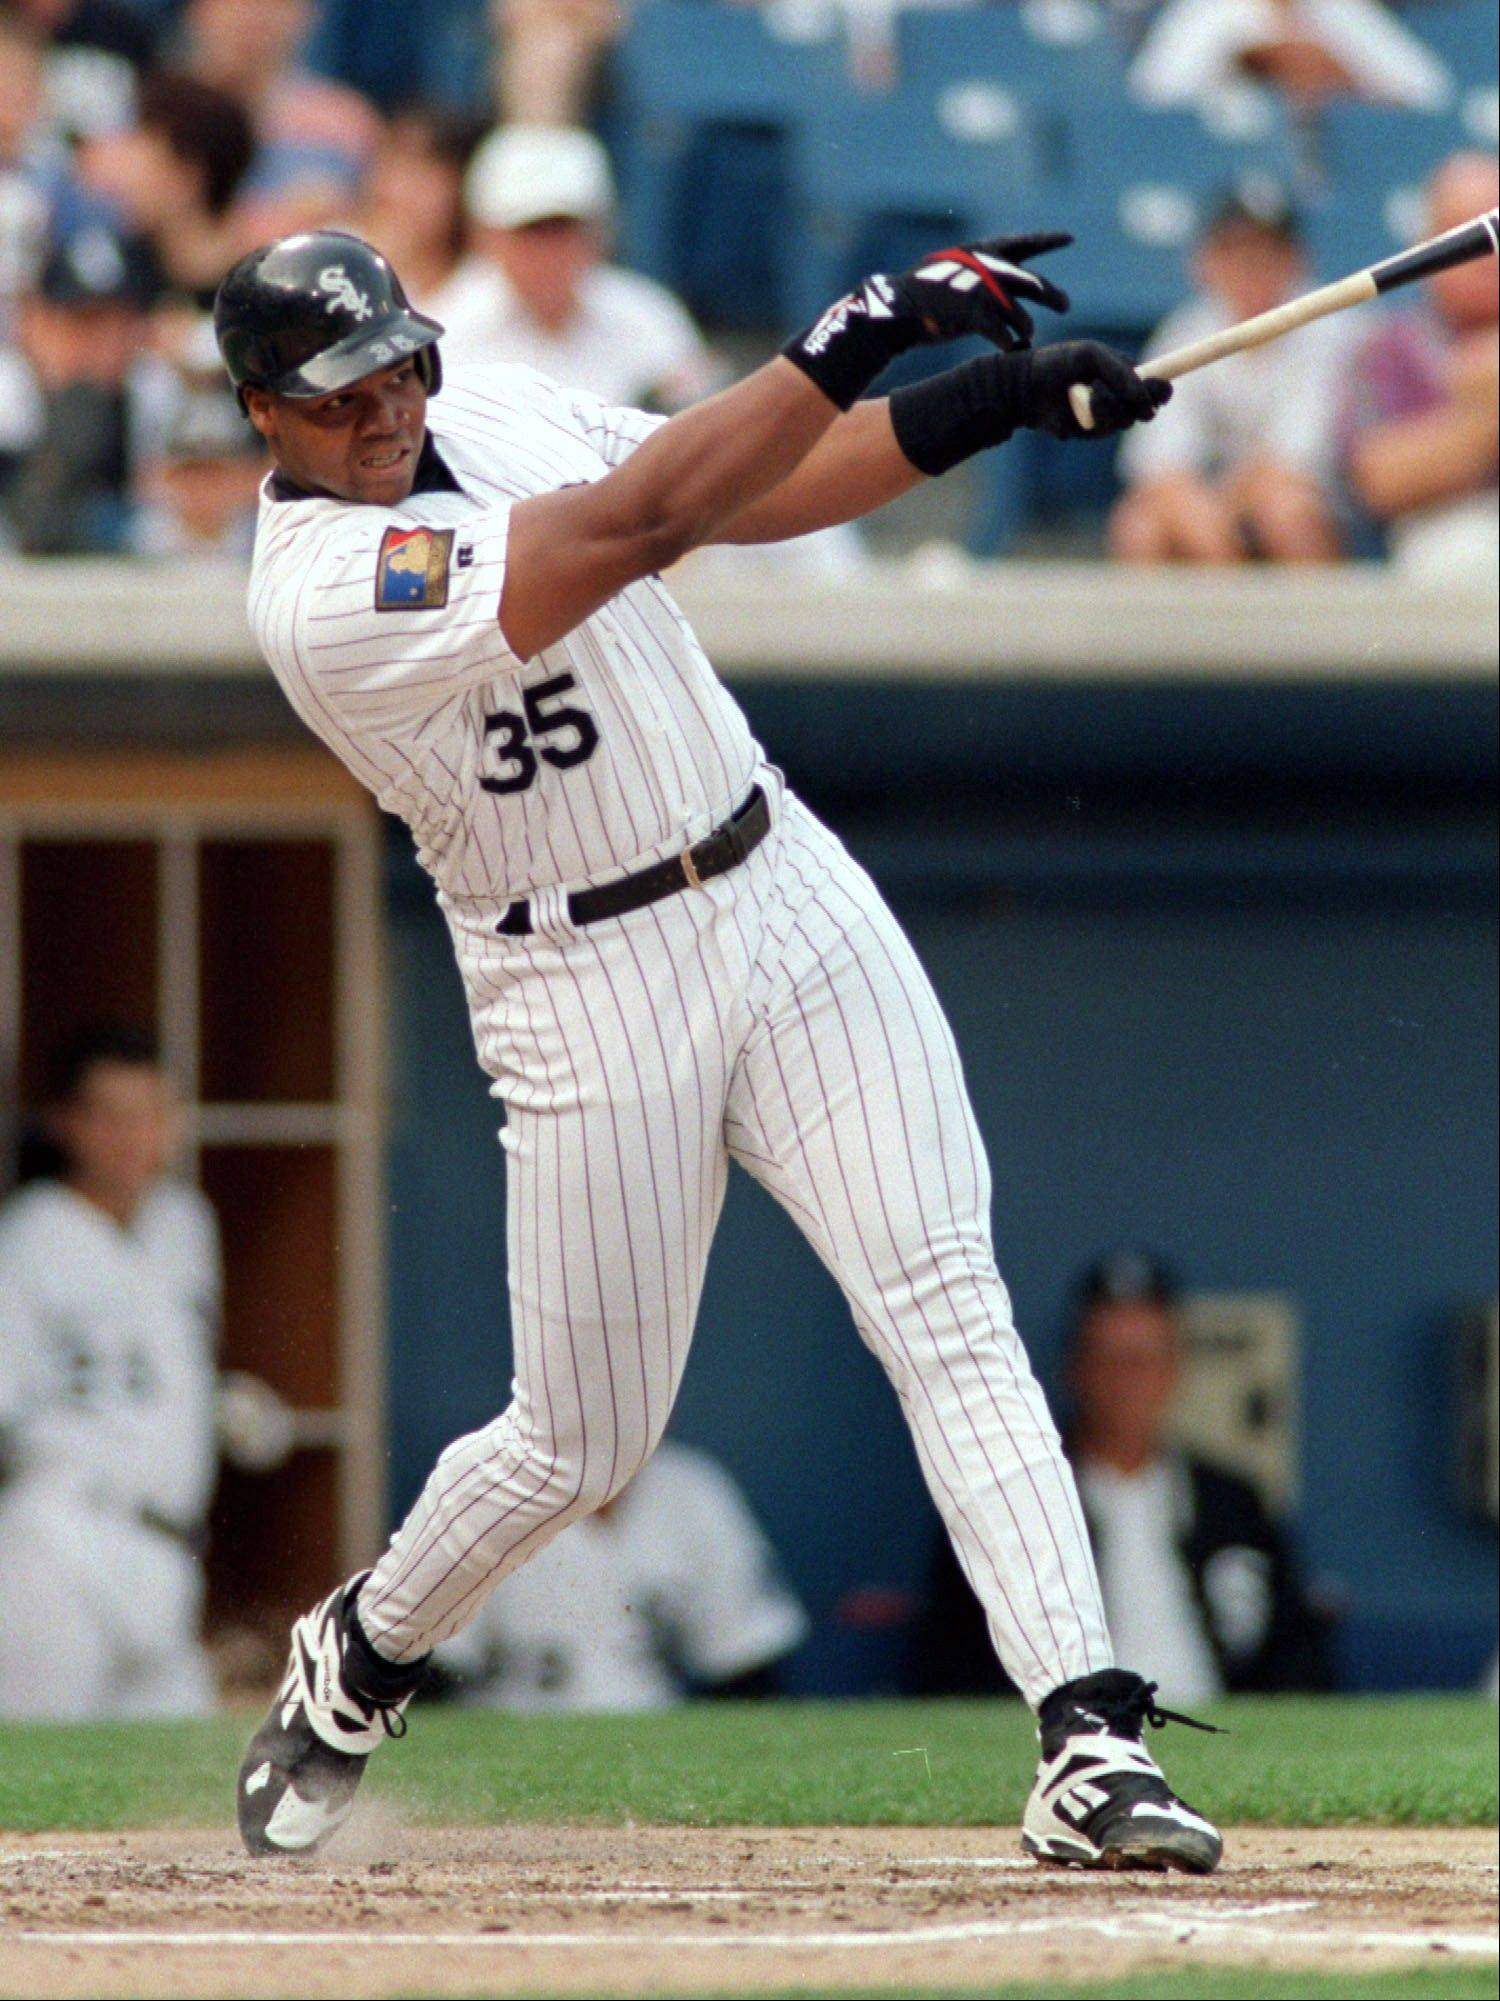 Chicago White Sox slugger Frank Thomas will find out Wednesday if he's first-ballot inductee in the National Baseball Hall of Fame.